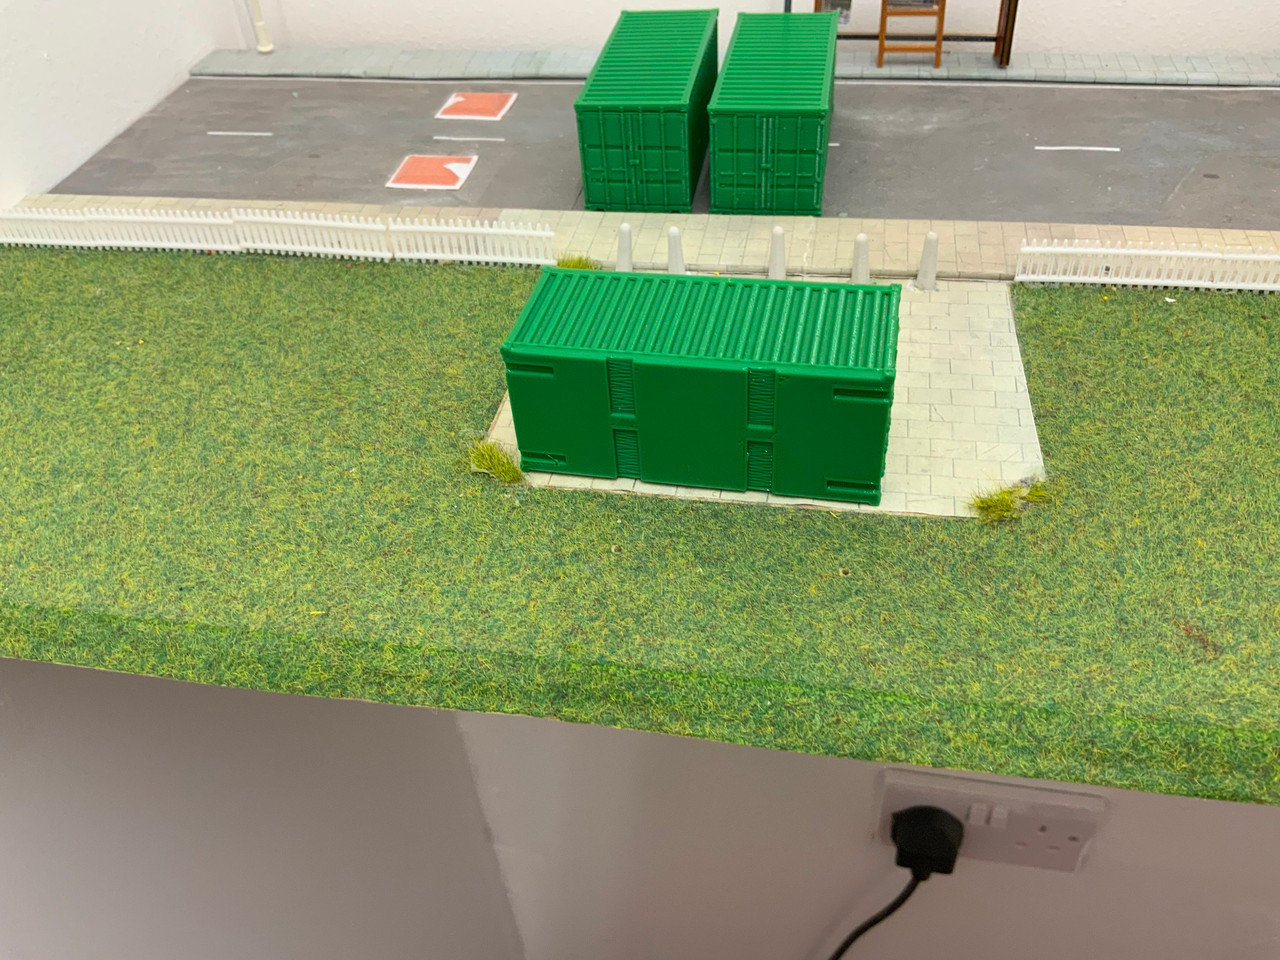 1:76 scale SR Hobbies 3D printed 20ft Green container